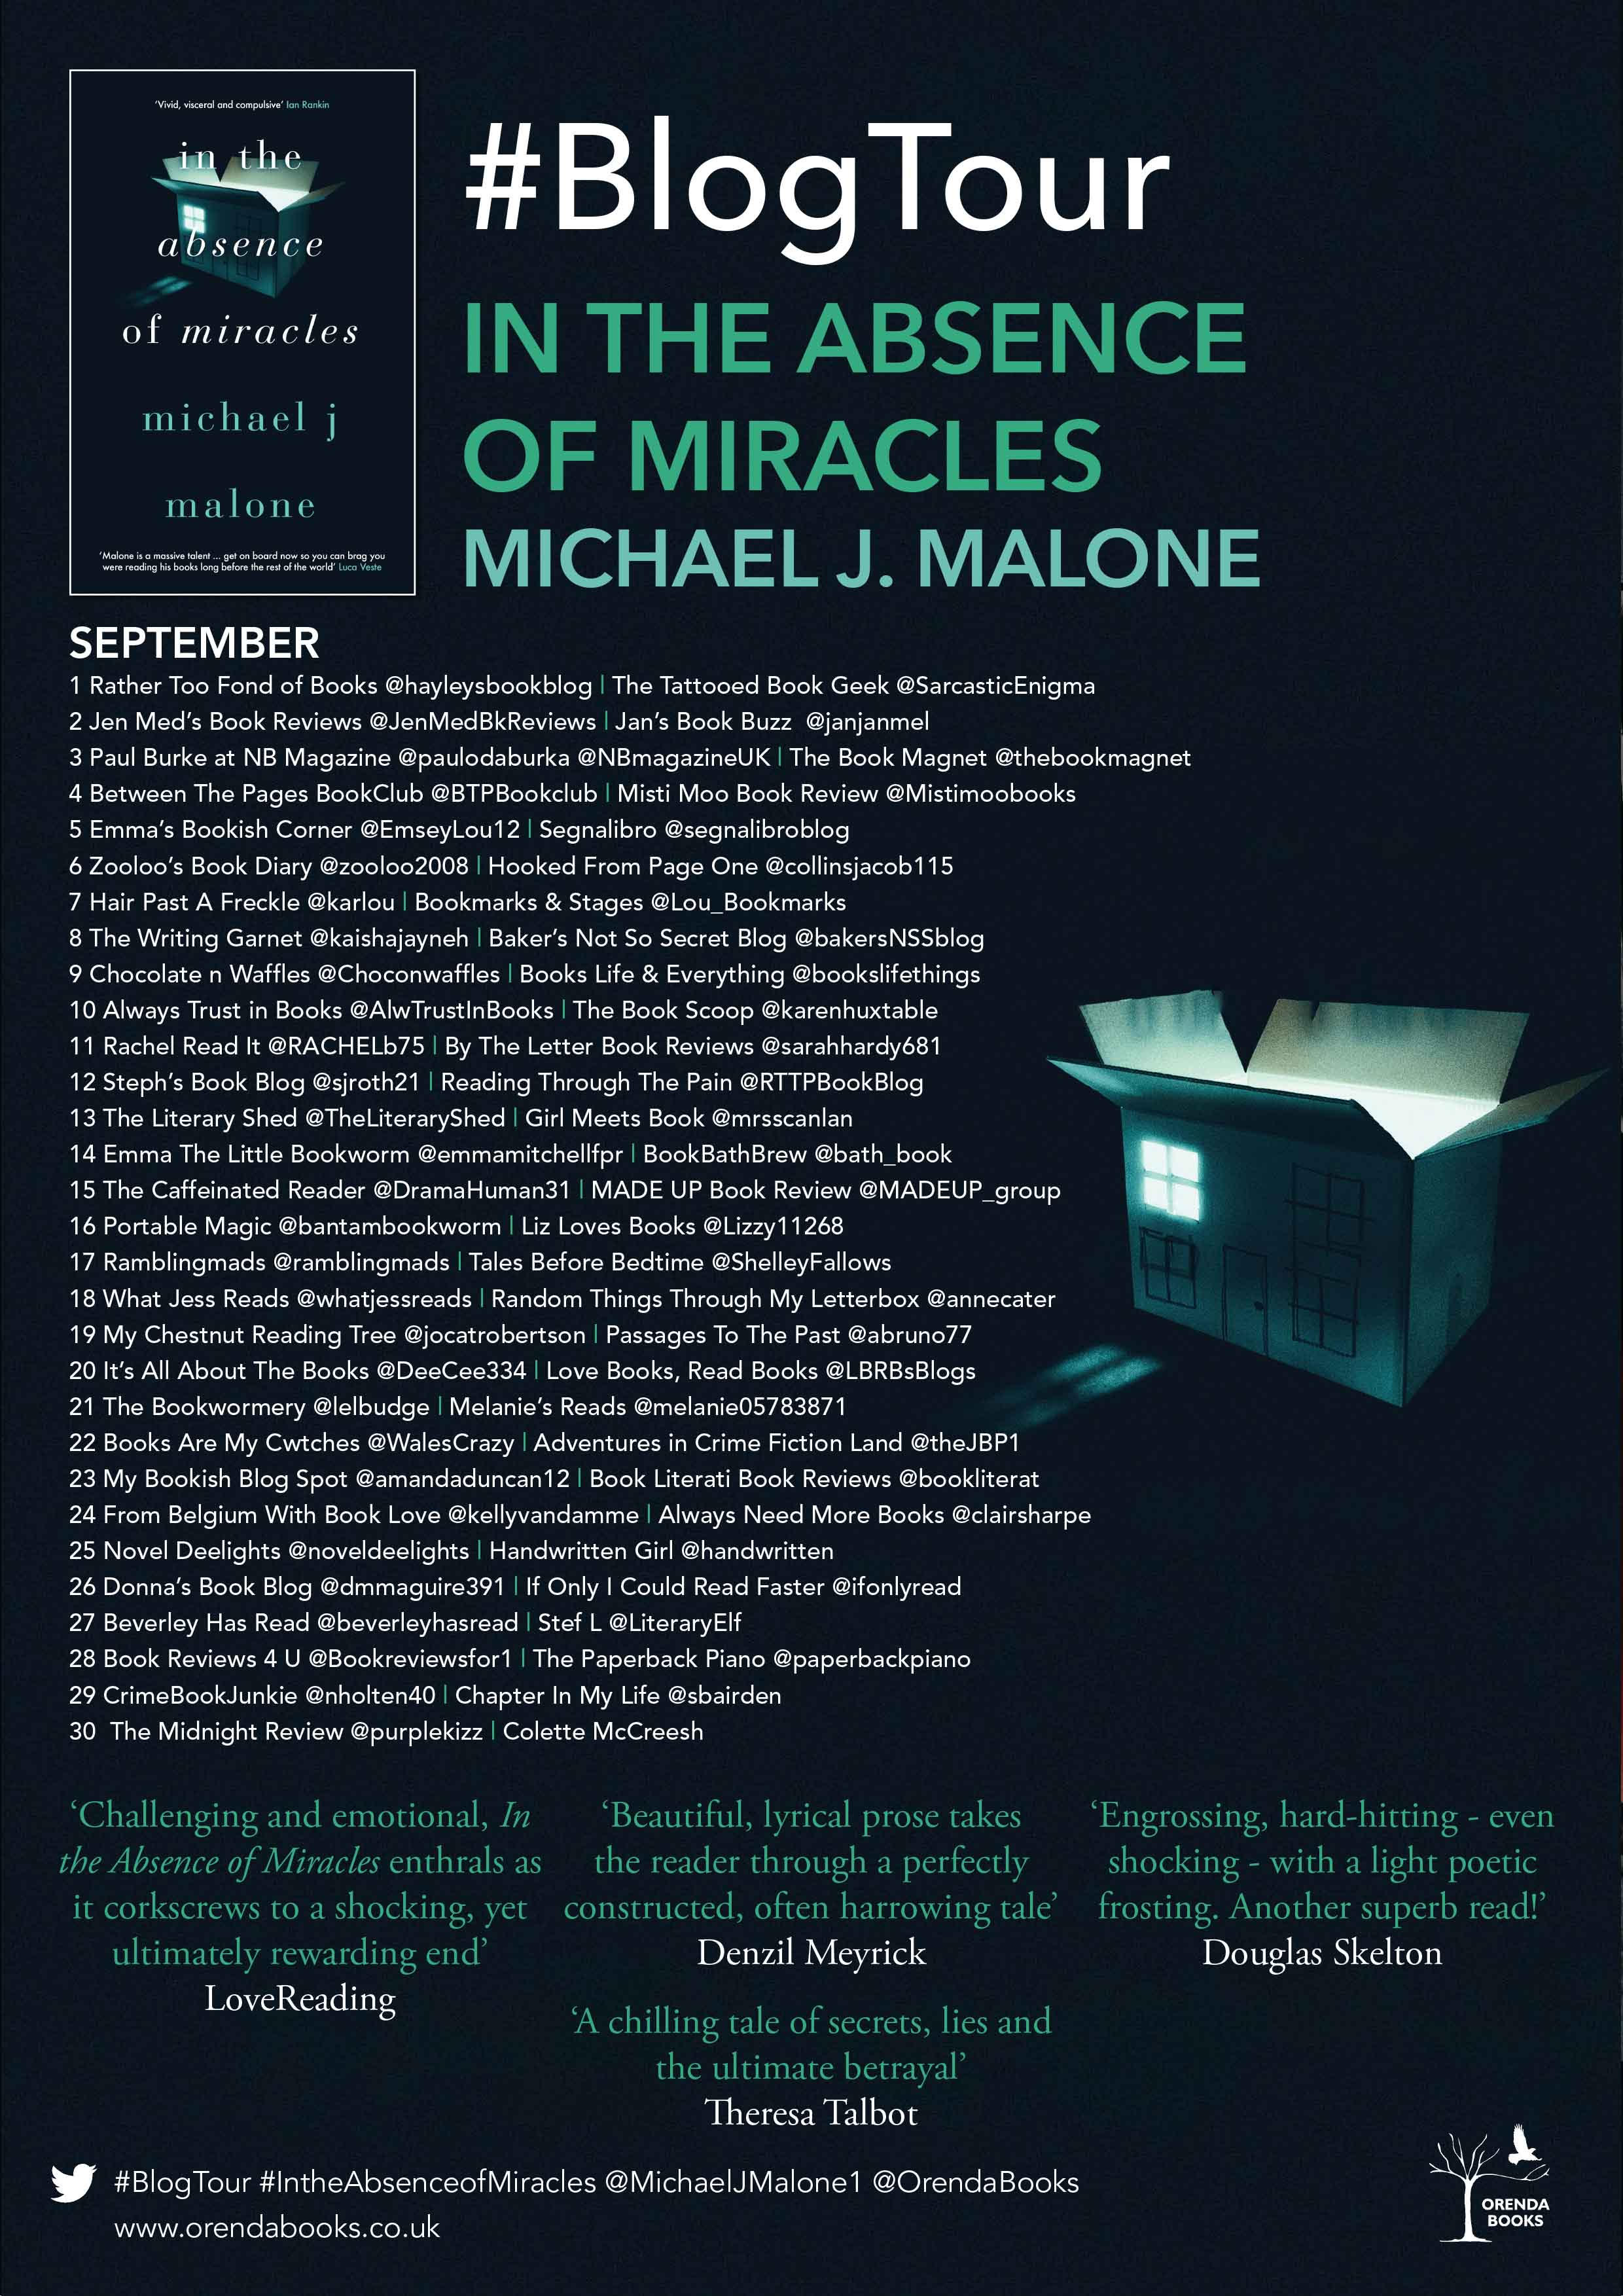 In The Absence of Miracles BT Poster